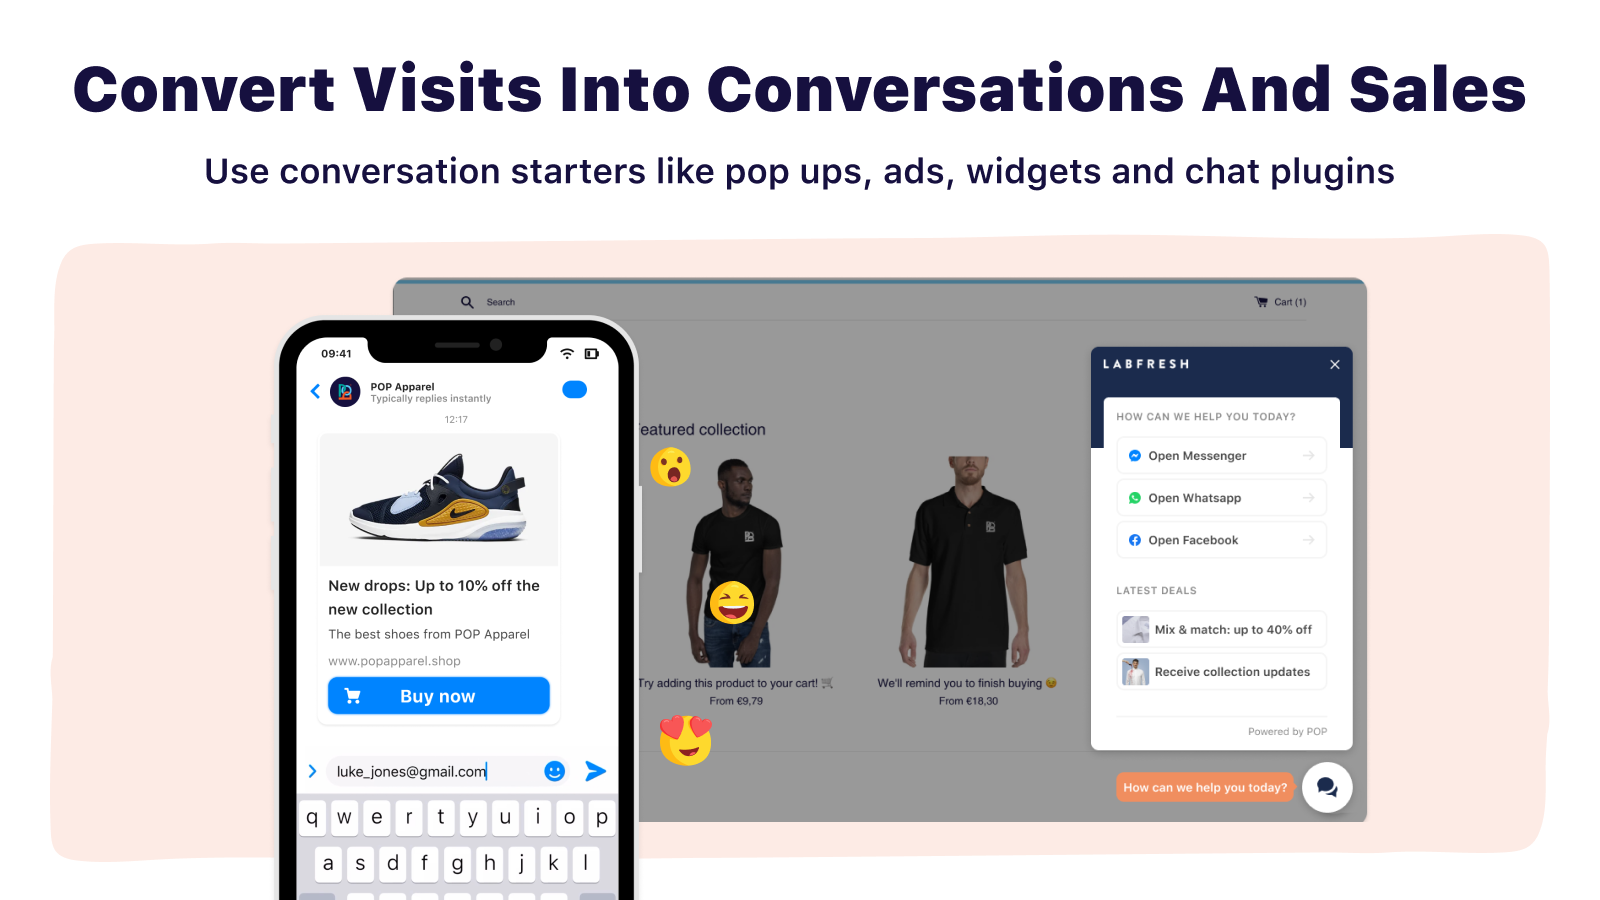 converting visitors into conversations and sales